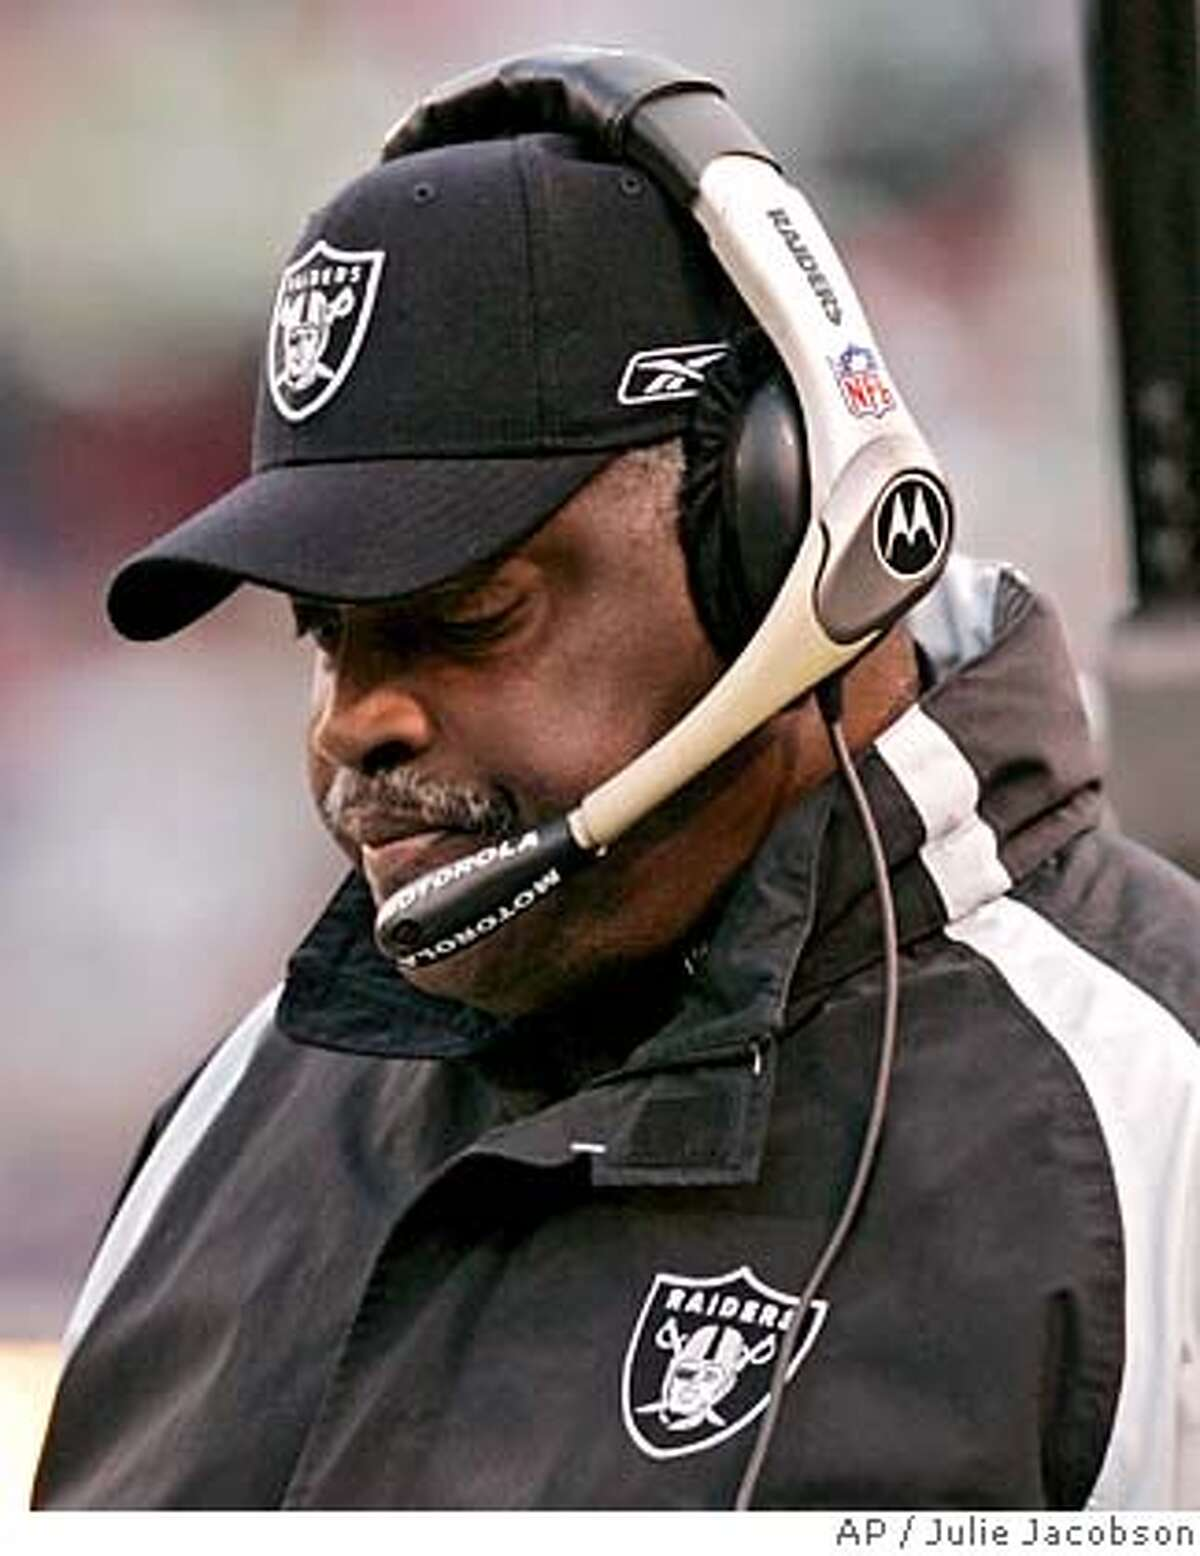 ** FILE ** Oakland Raiders coach Art Shell paces the sidelines in this file photo from an NFL football game against the New York Jets Sunday, Dec. 31, 2006, in East Rutherford, N.J. Shell's first season is now complete and the only direction the Raiders went was down. Oakland (2-14) set franchise records for losses and offensive ineptitude, while throwing in a good dose of turmoil and dissension in a season that was by far the worst in Al Davis' 44 years with the team. (AP Photo/Julie Jacobson) DEC. 31, 2006 FILE PHOTO EFE OUT